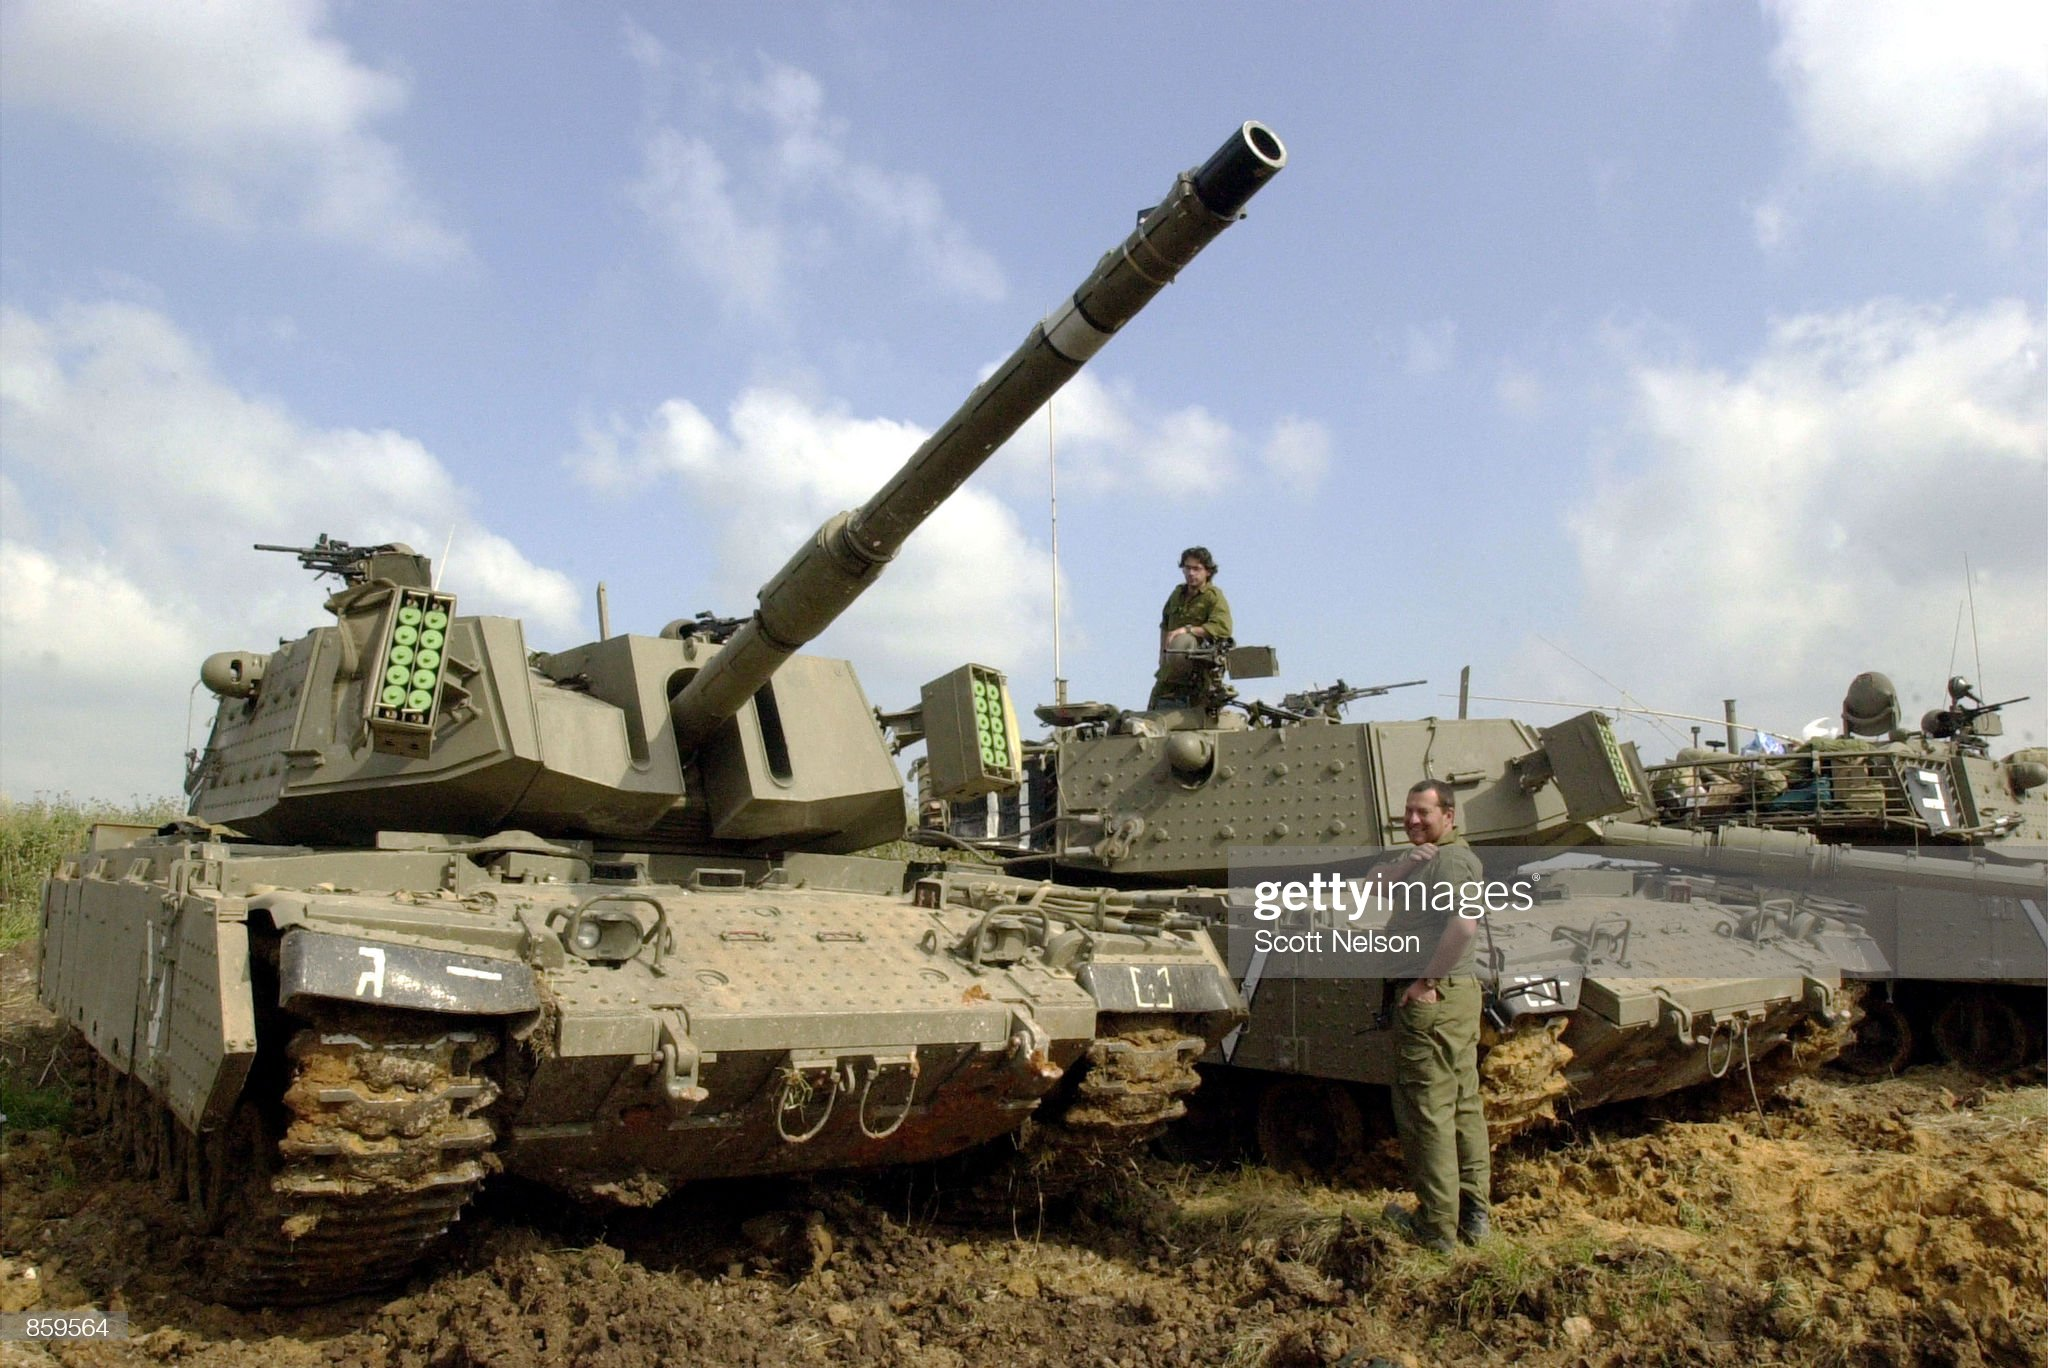 https://media.gettyimages.com/photos/israeli-soldiers-park-their-tanks-in-an-empty-field-april-9-2002-just-picture-id859564?s=2048x2048